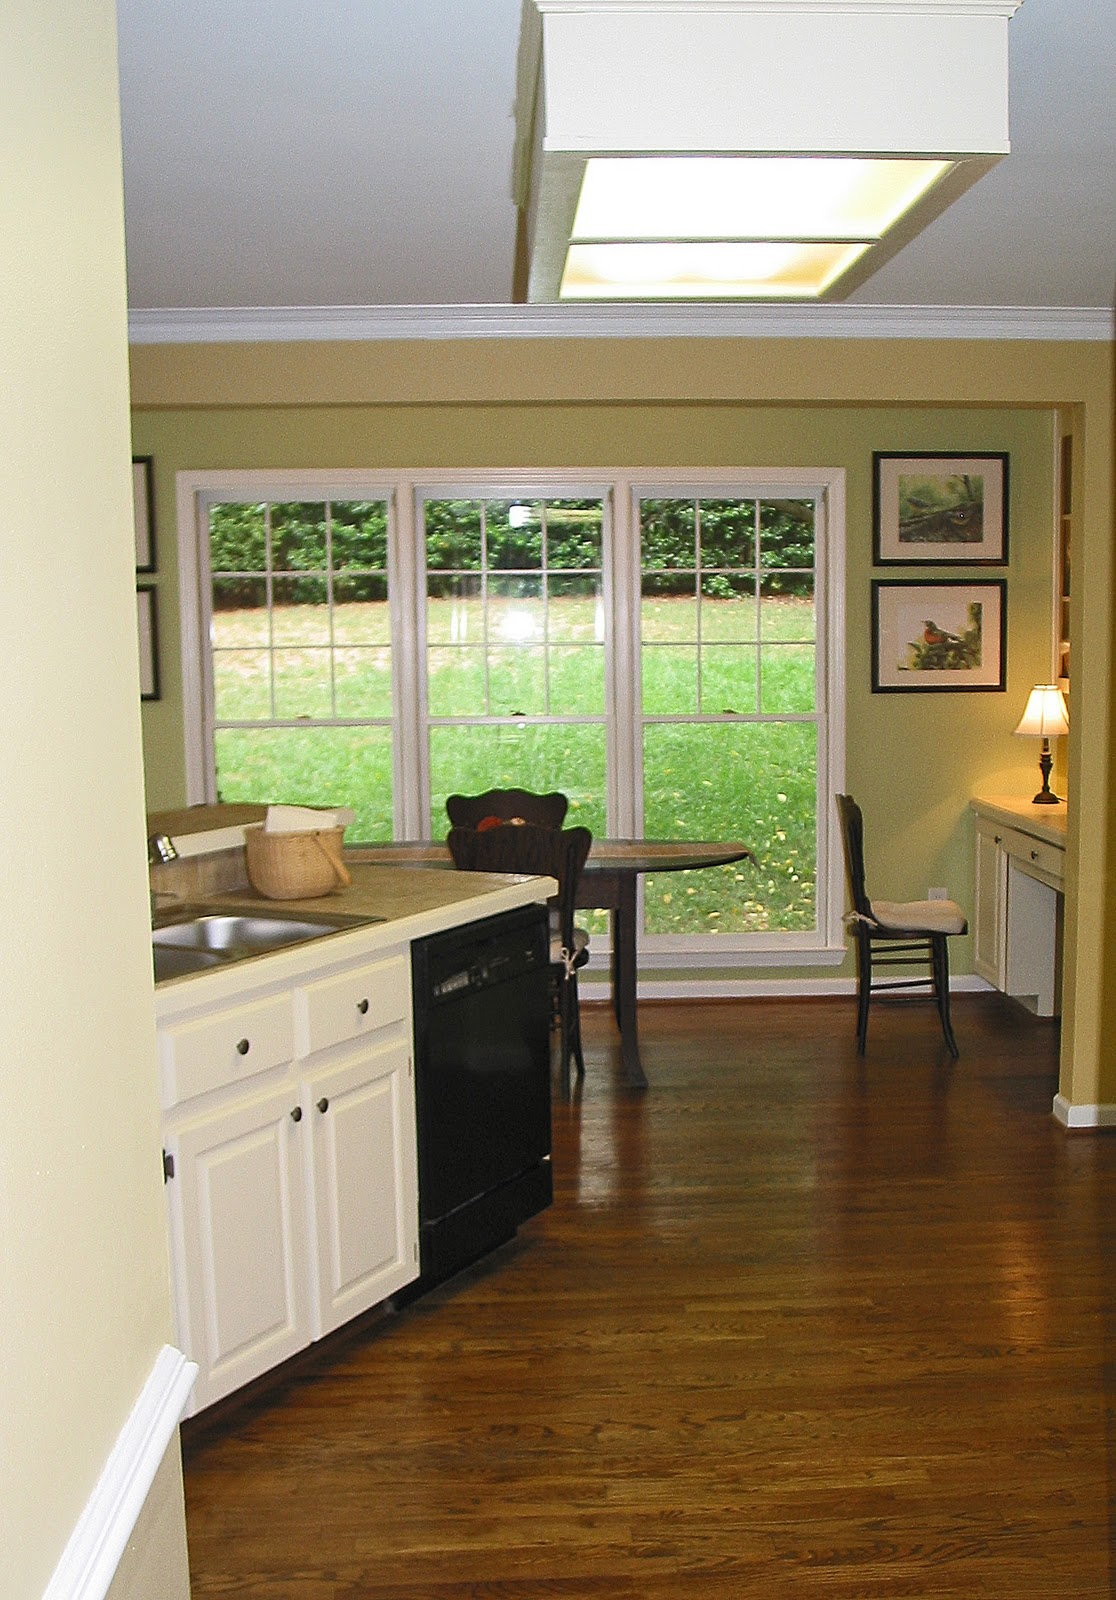 Imaginecozy Staging A Kitchen: Goodbye, House. Hello, Home! Blog : Home Staging -- A